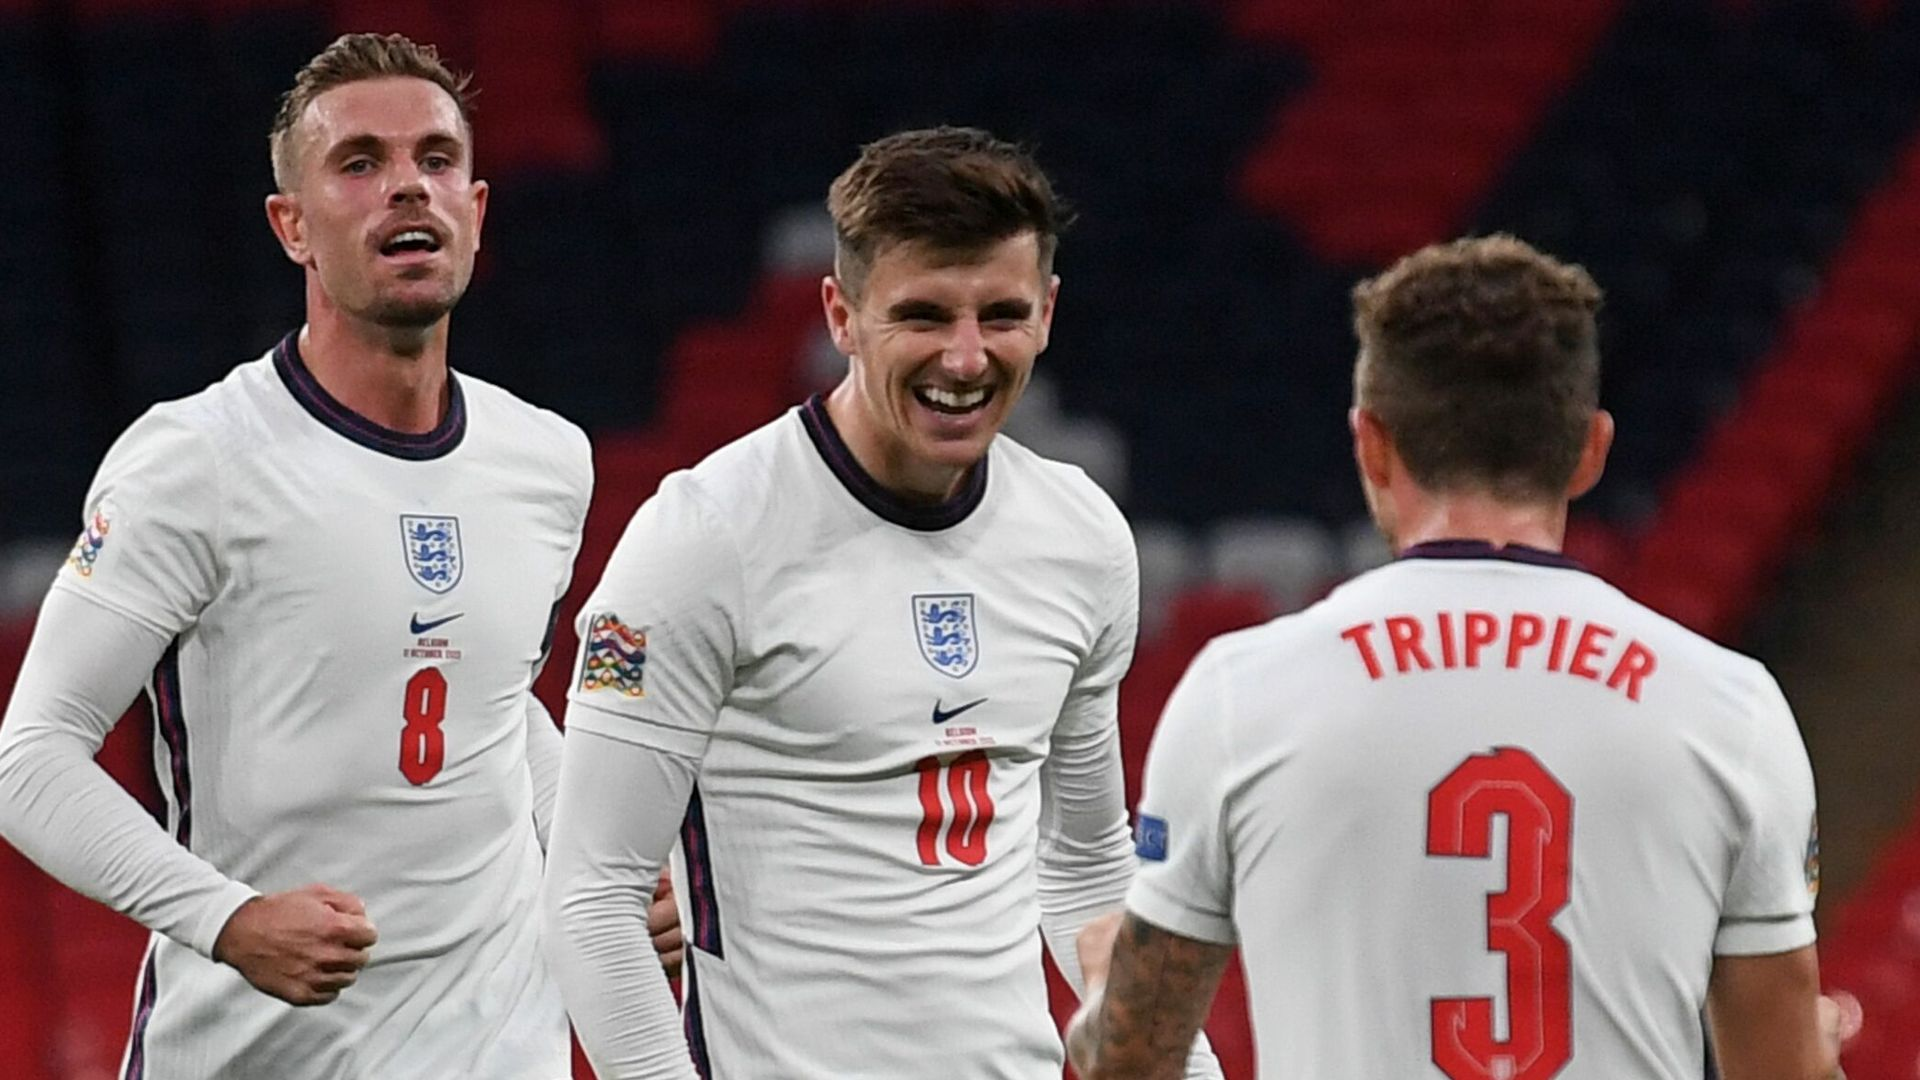 England top group after battling win over Belgium